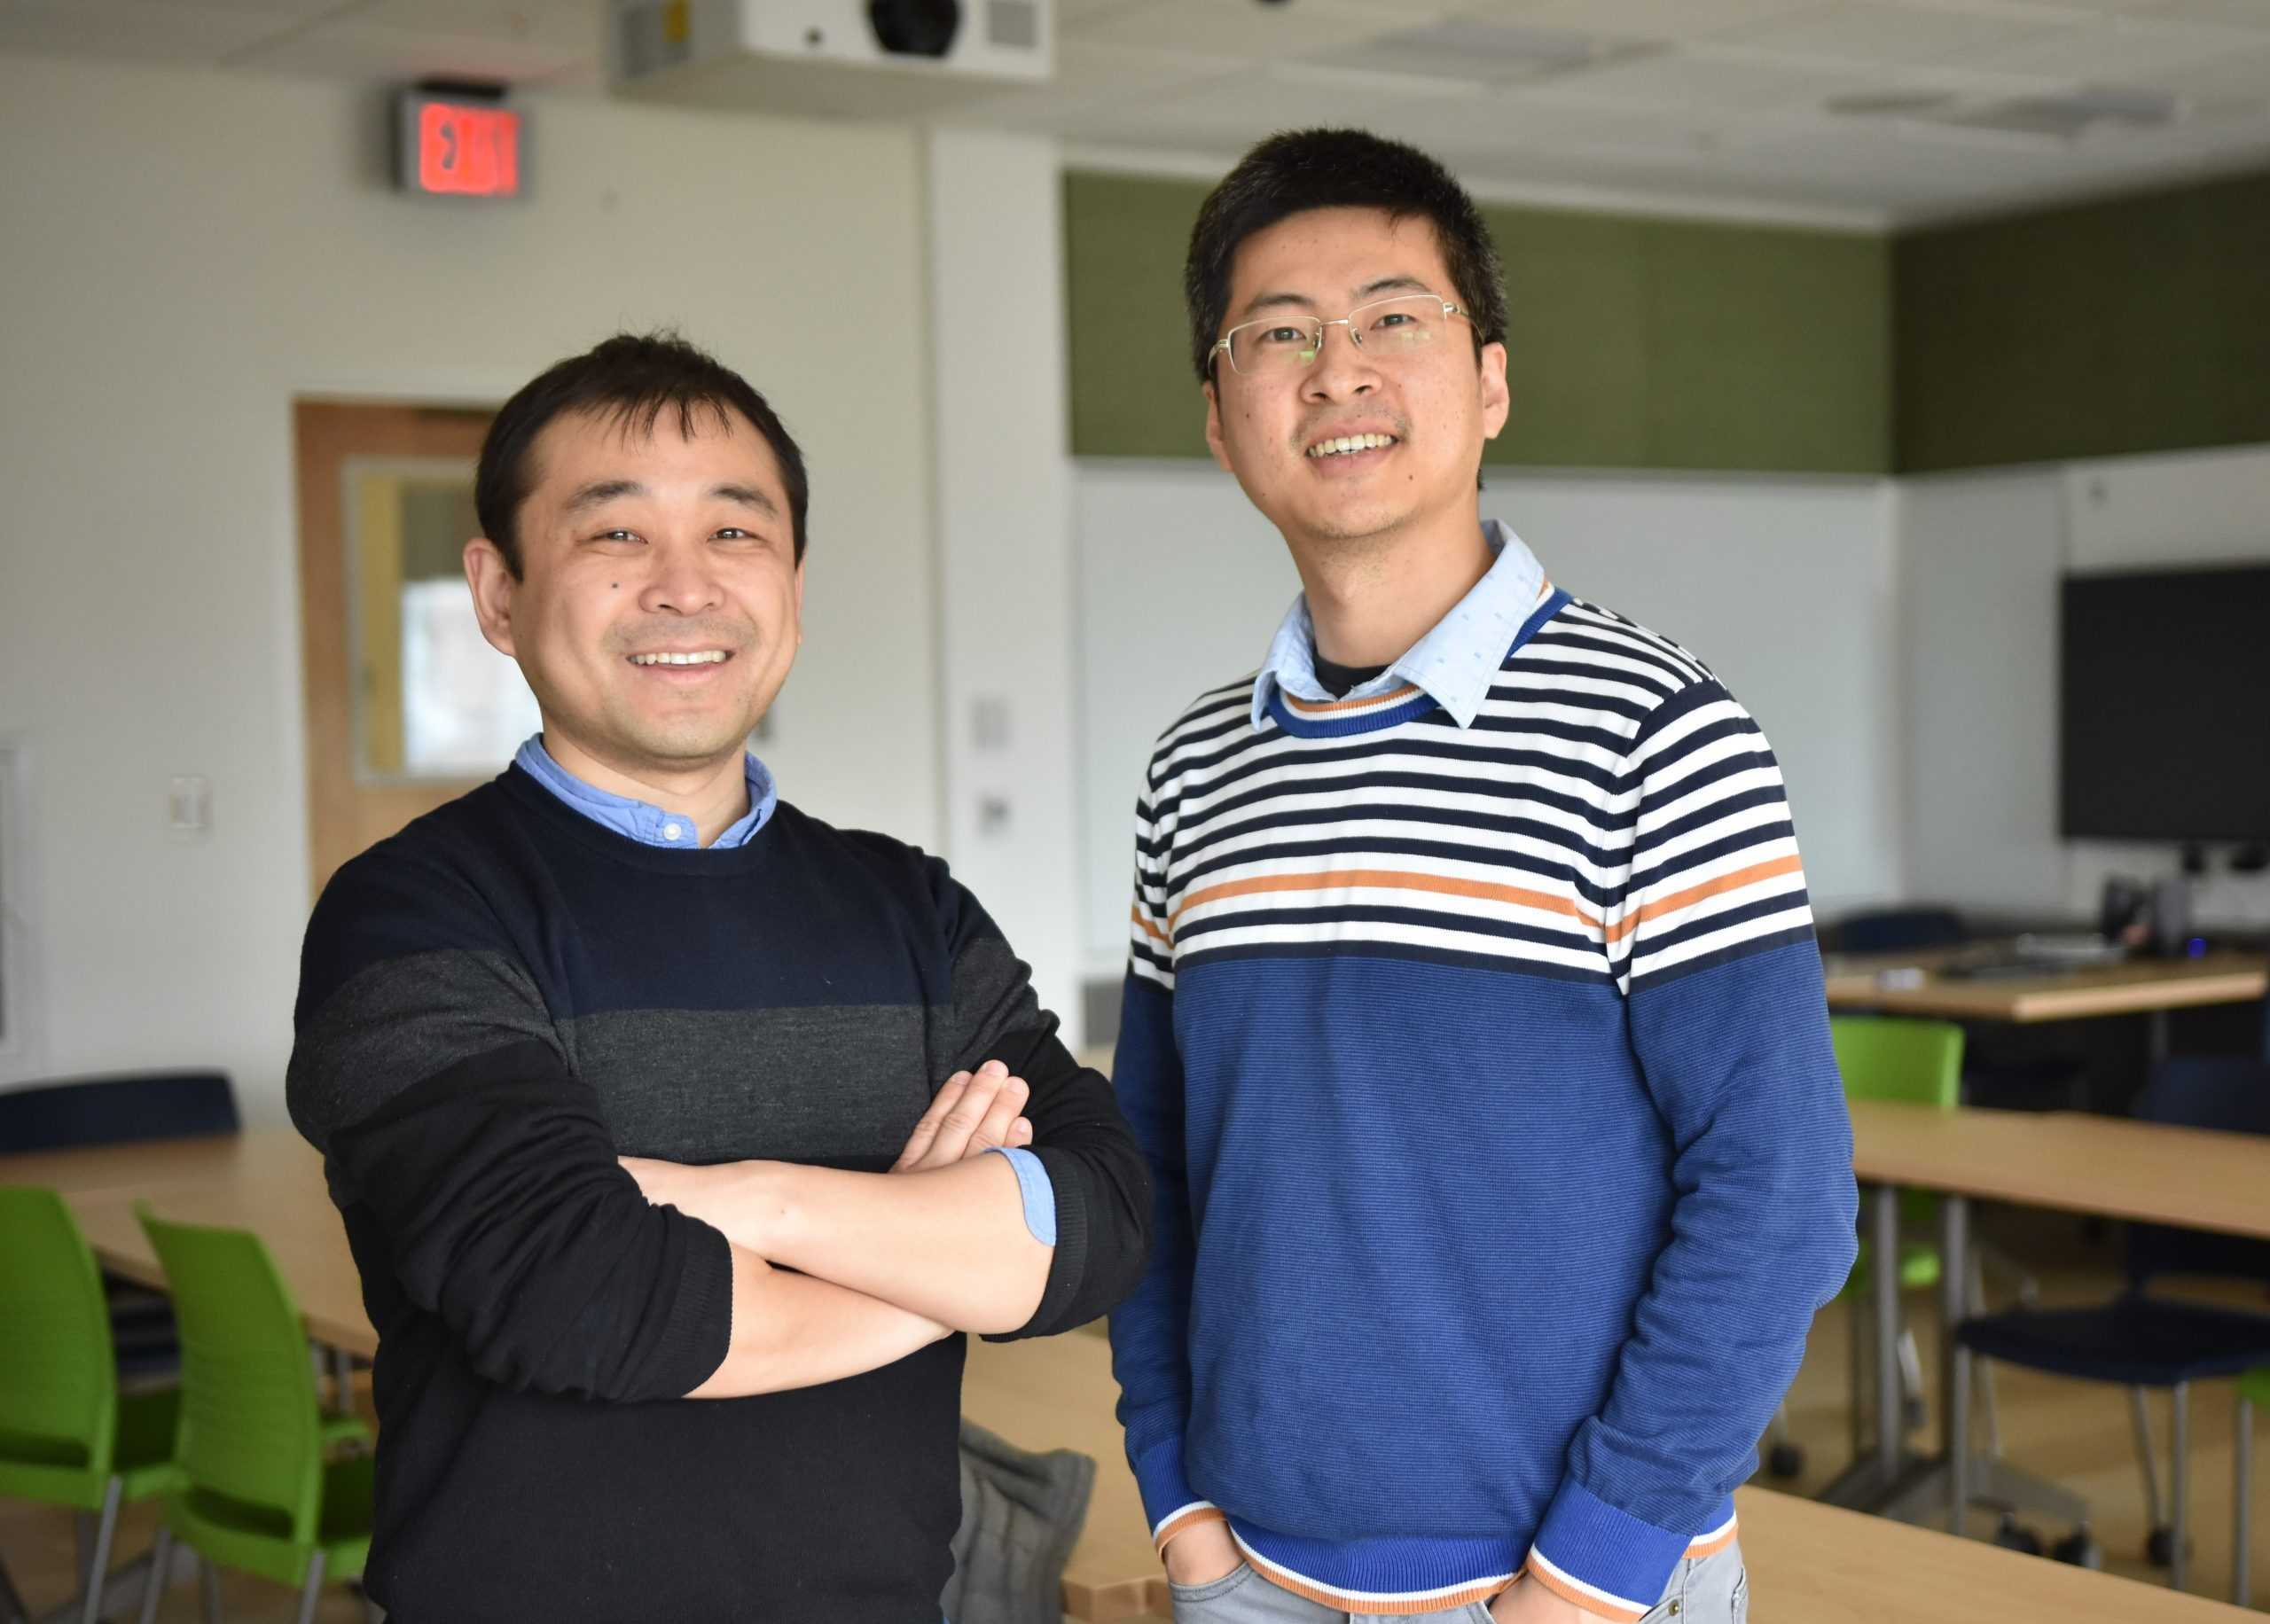 Photo depicts Kaiyu Guan and Chongya Jiang posing in a classroom.